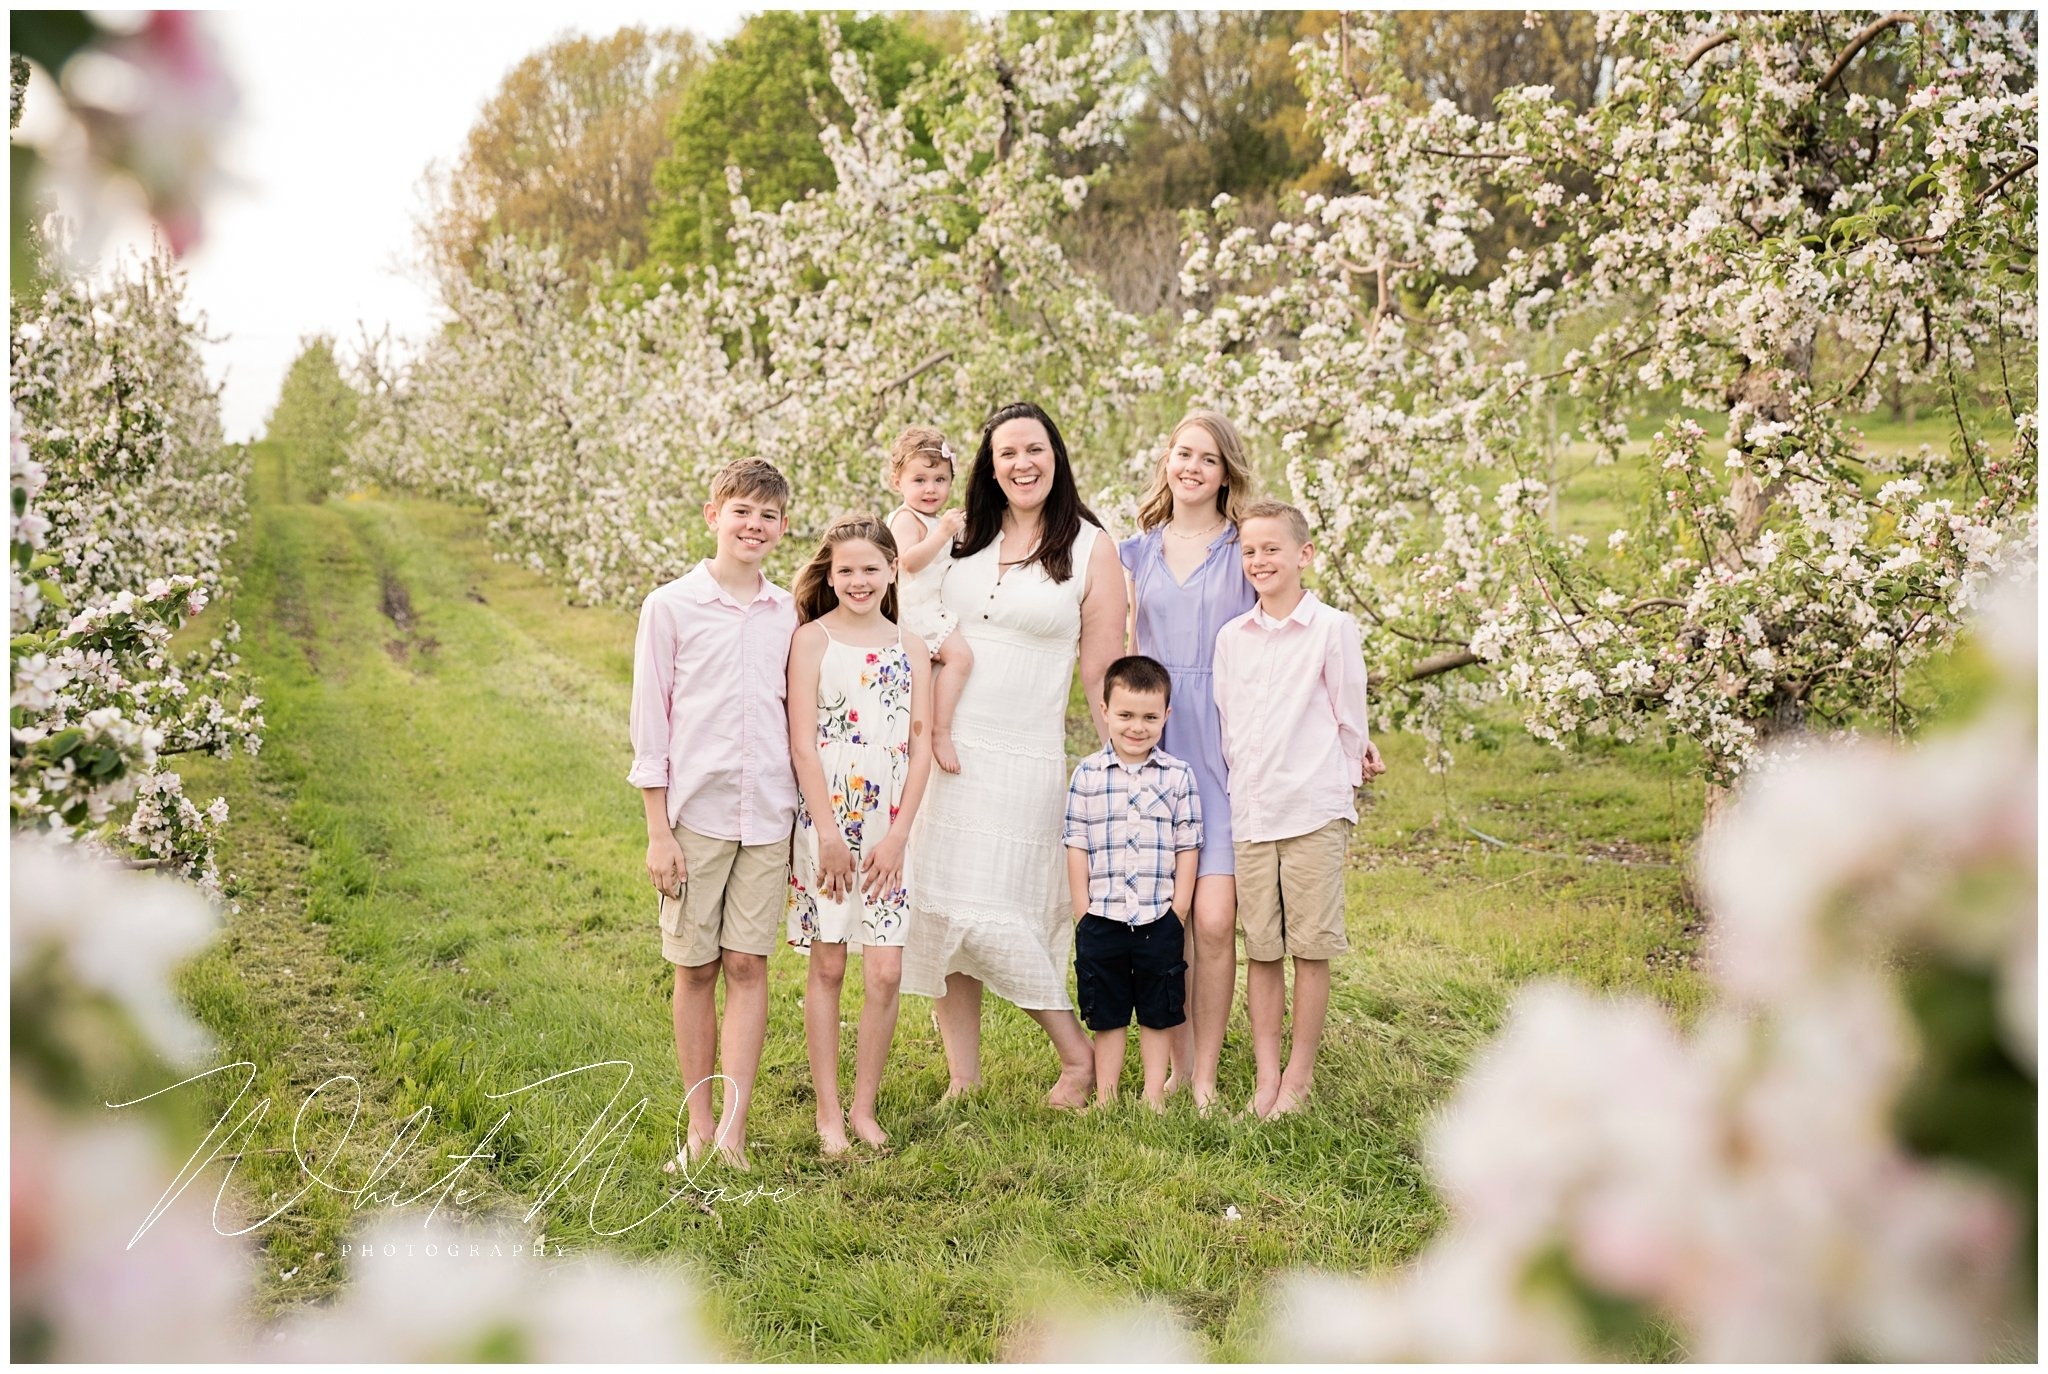 gorgeous seaside family portrait by Jennie Bishop of White Wave Photography